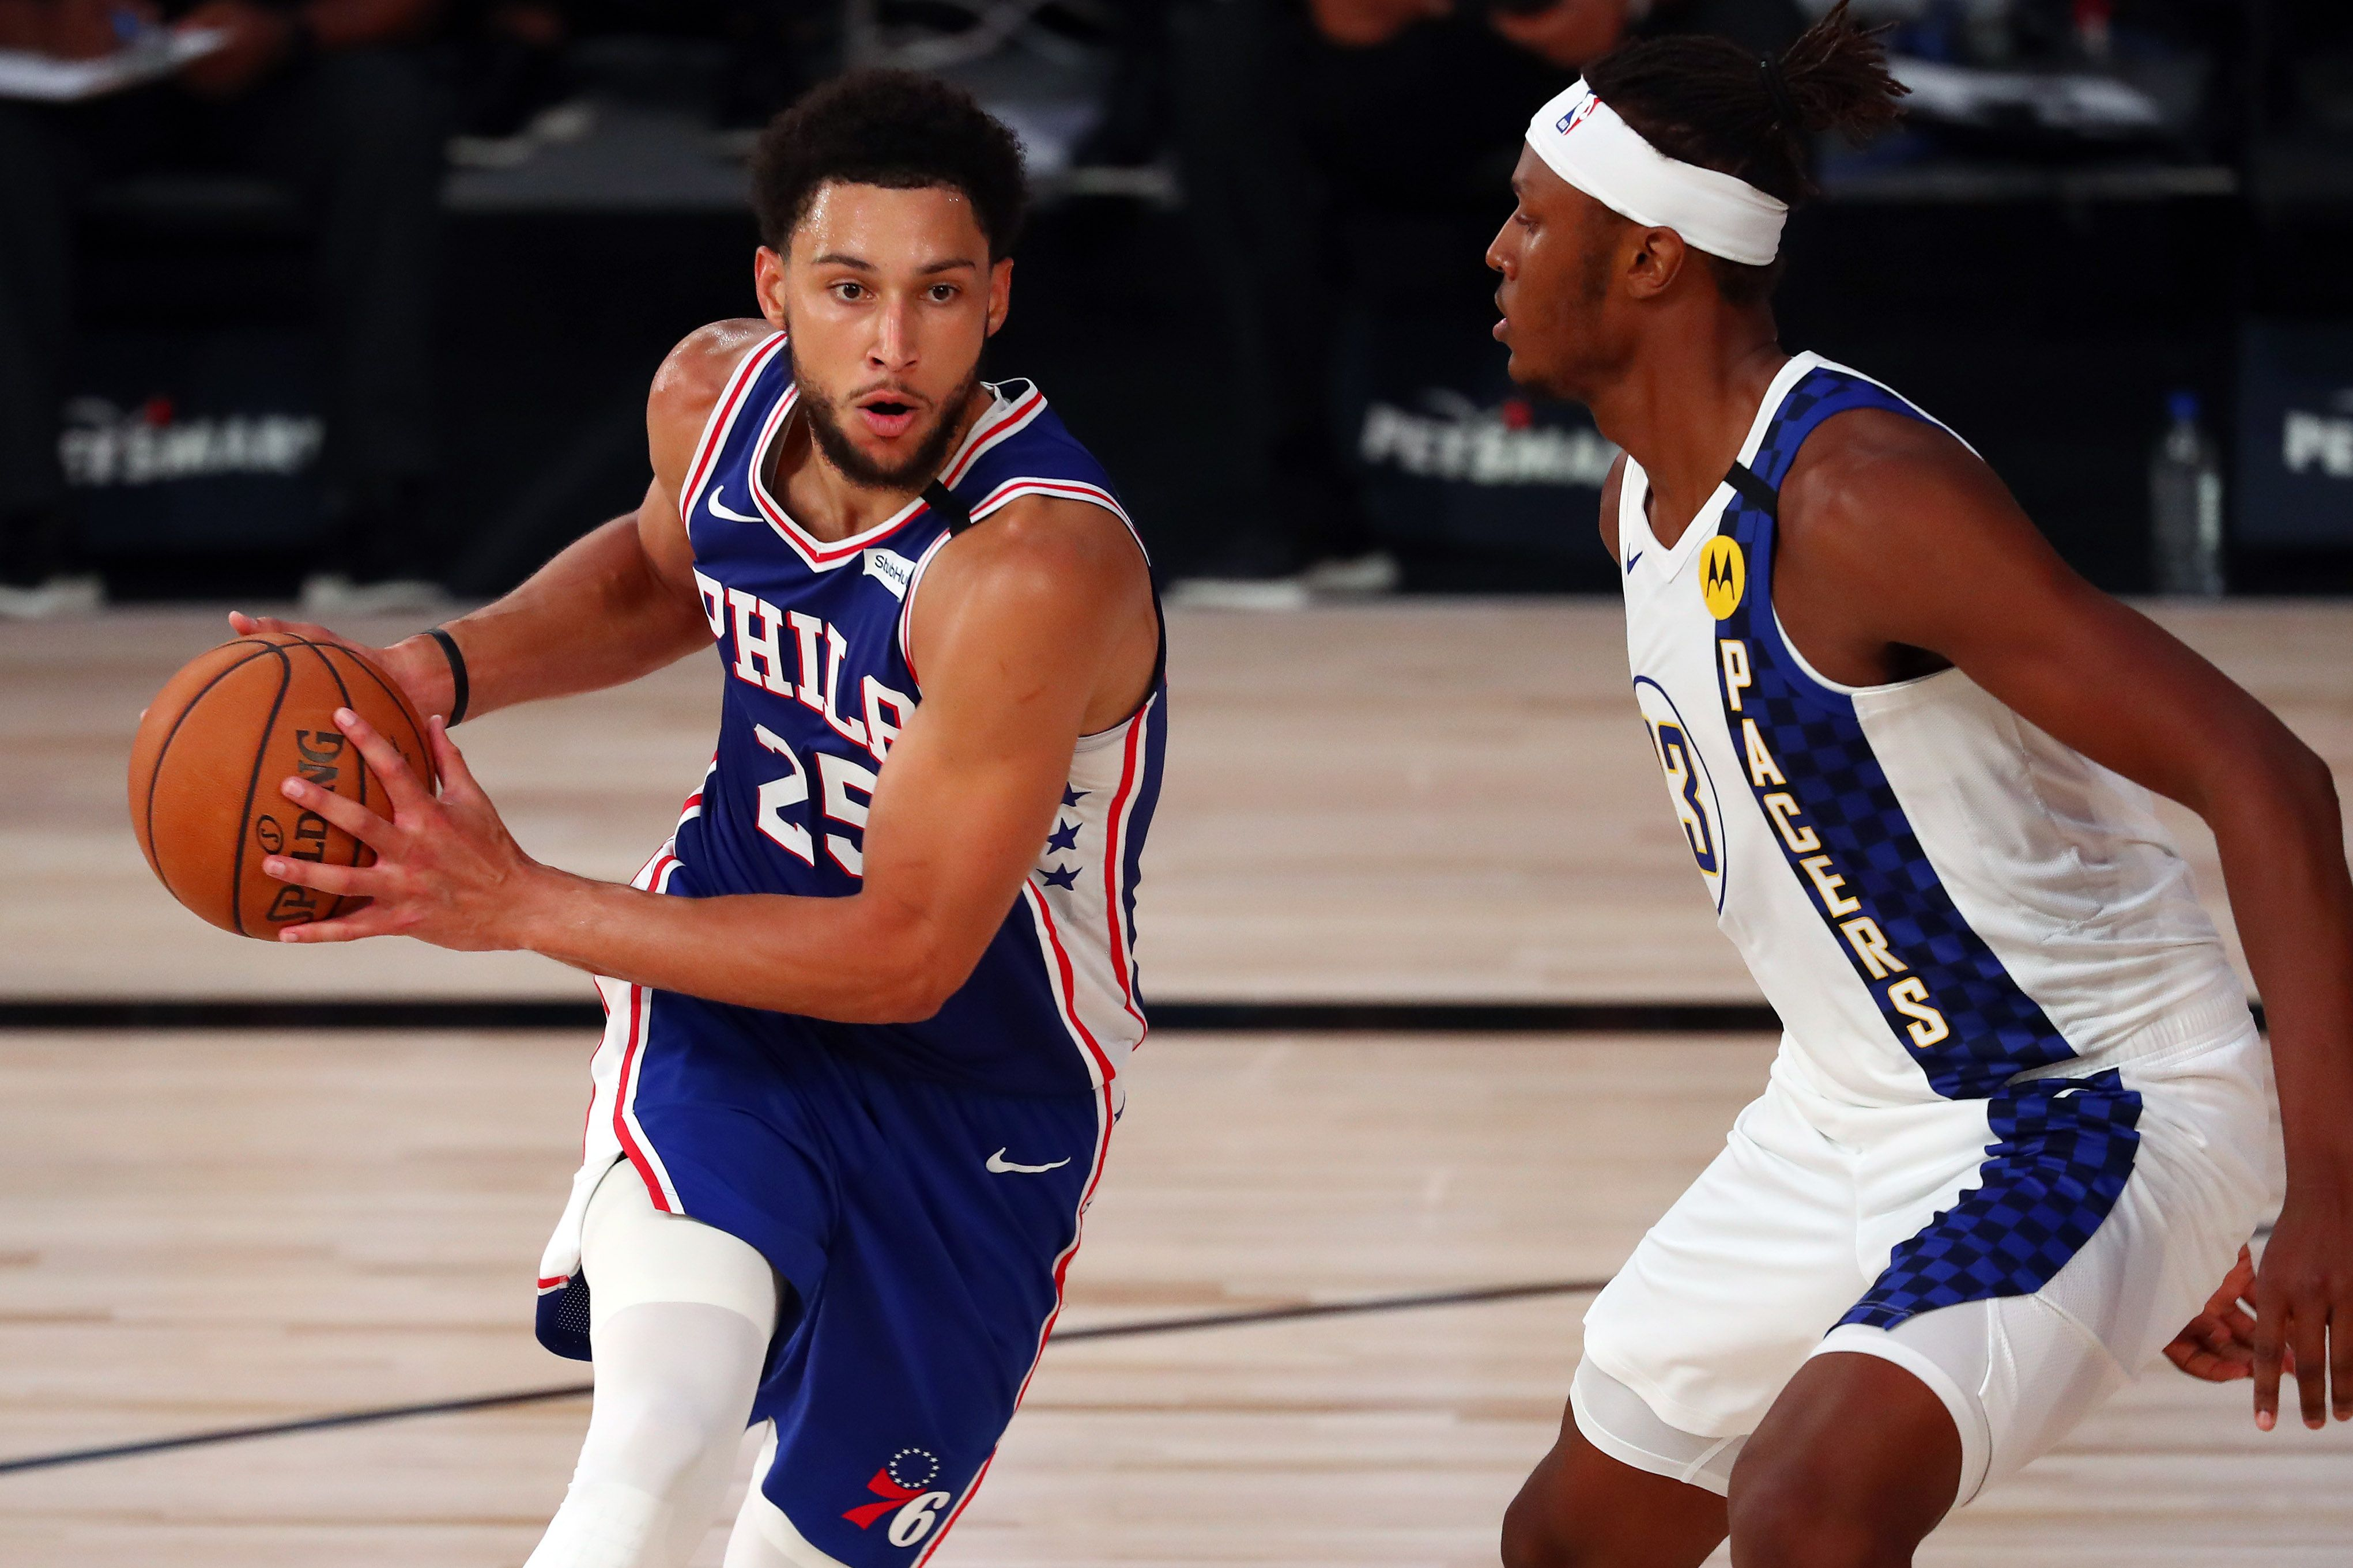 Ben Simmons going up against Myles Turner